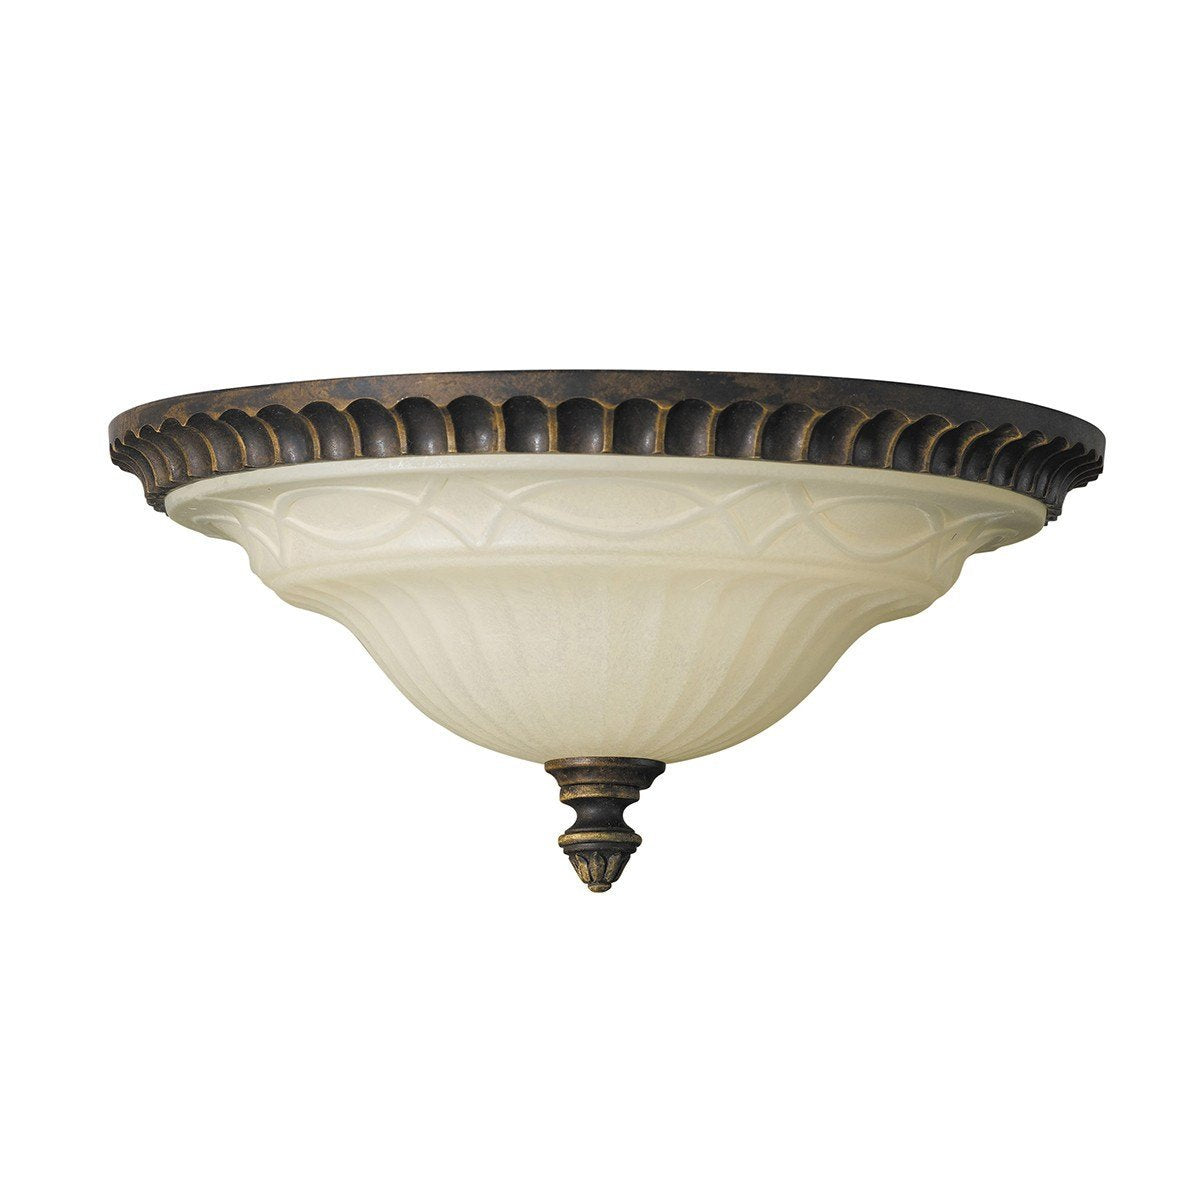 Feiss Drawing Room 2 Light Flush Mount - London Lighting - 1